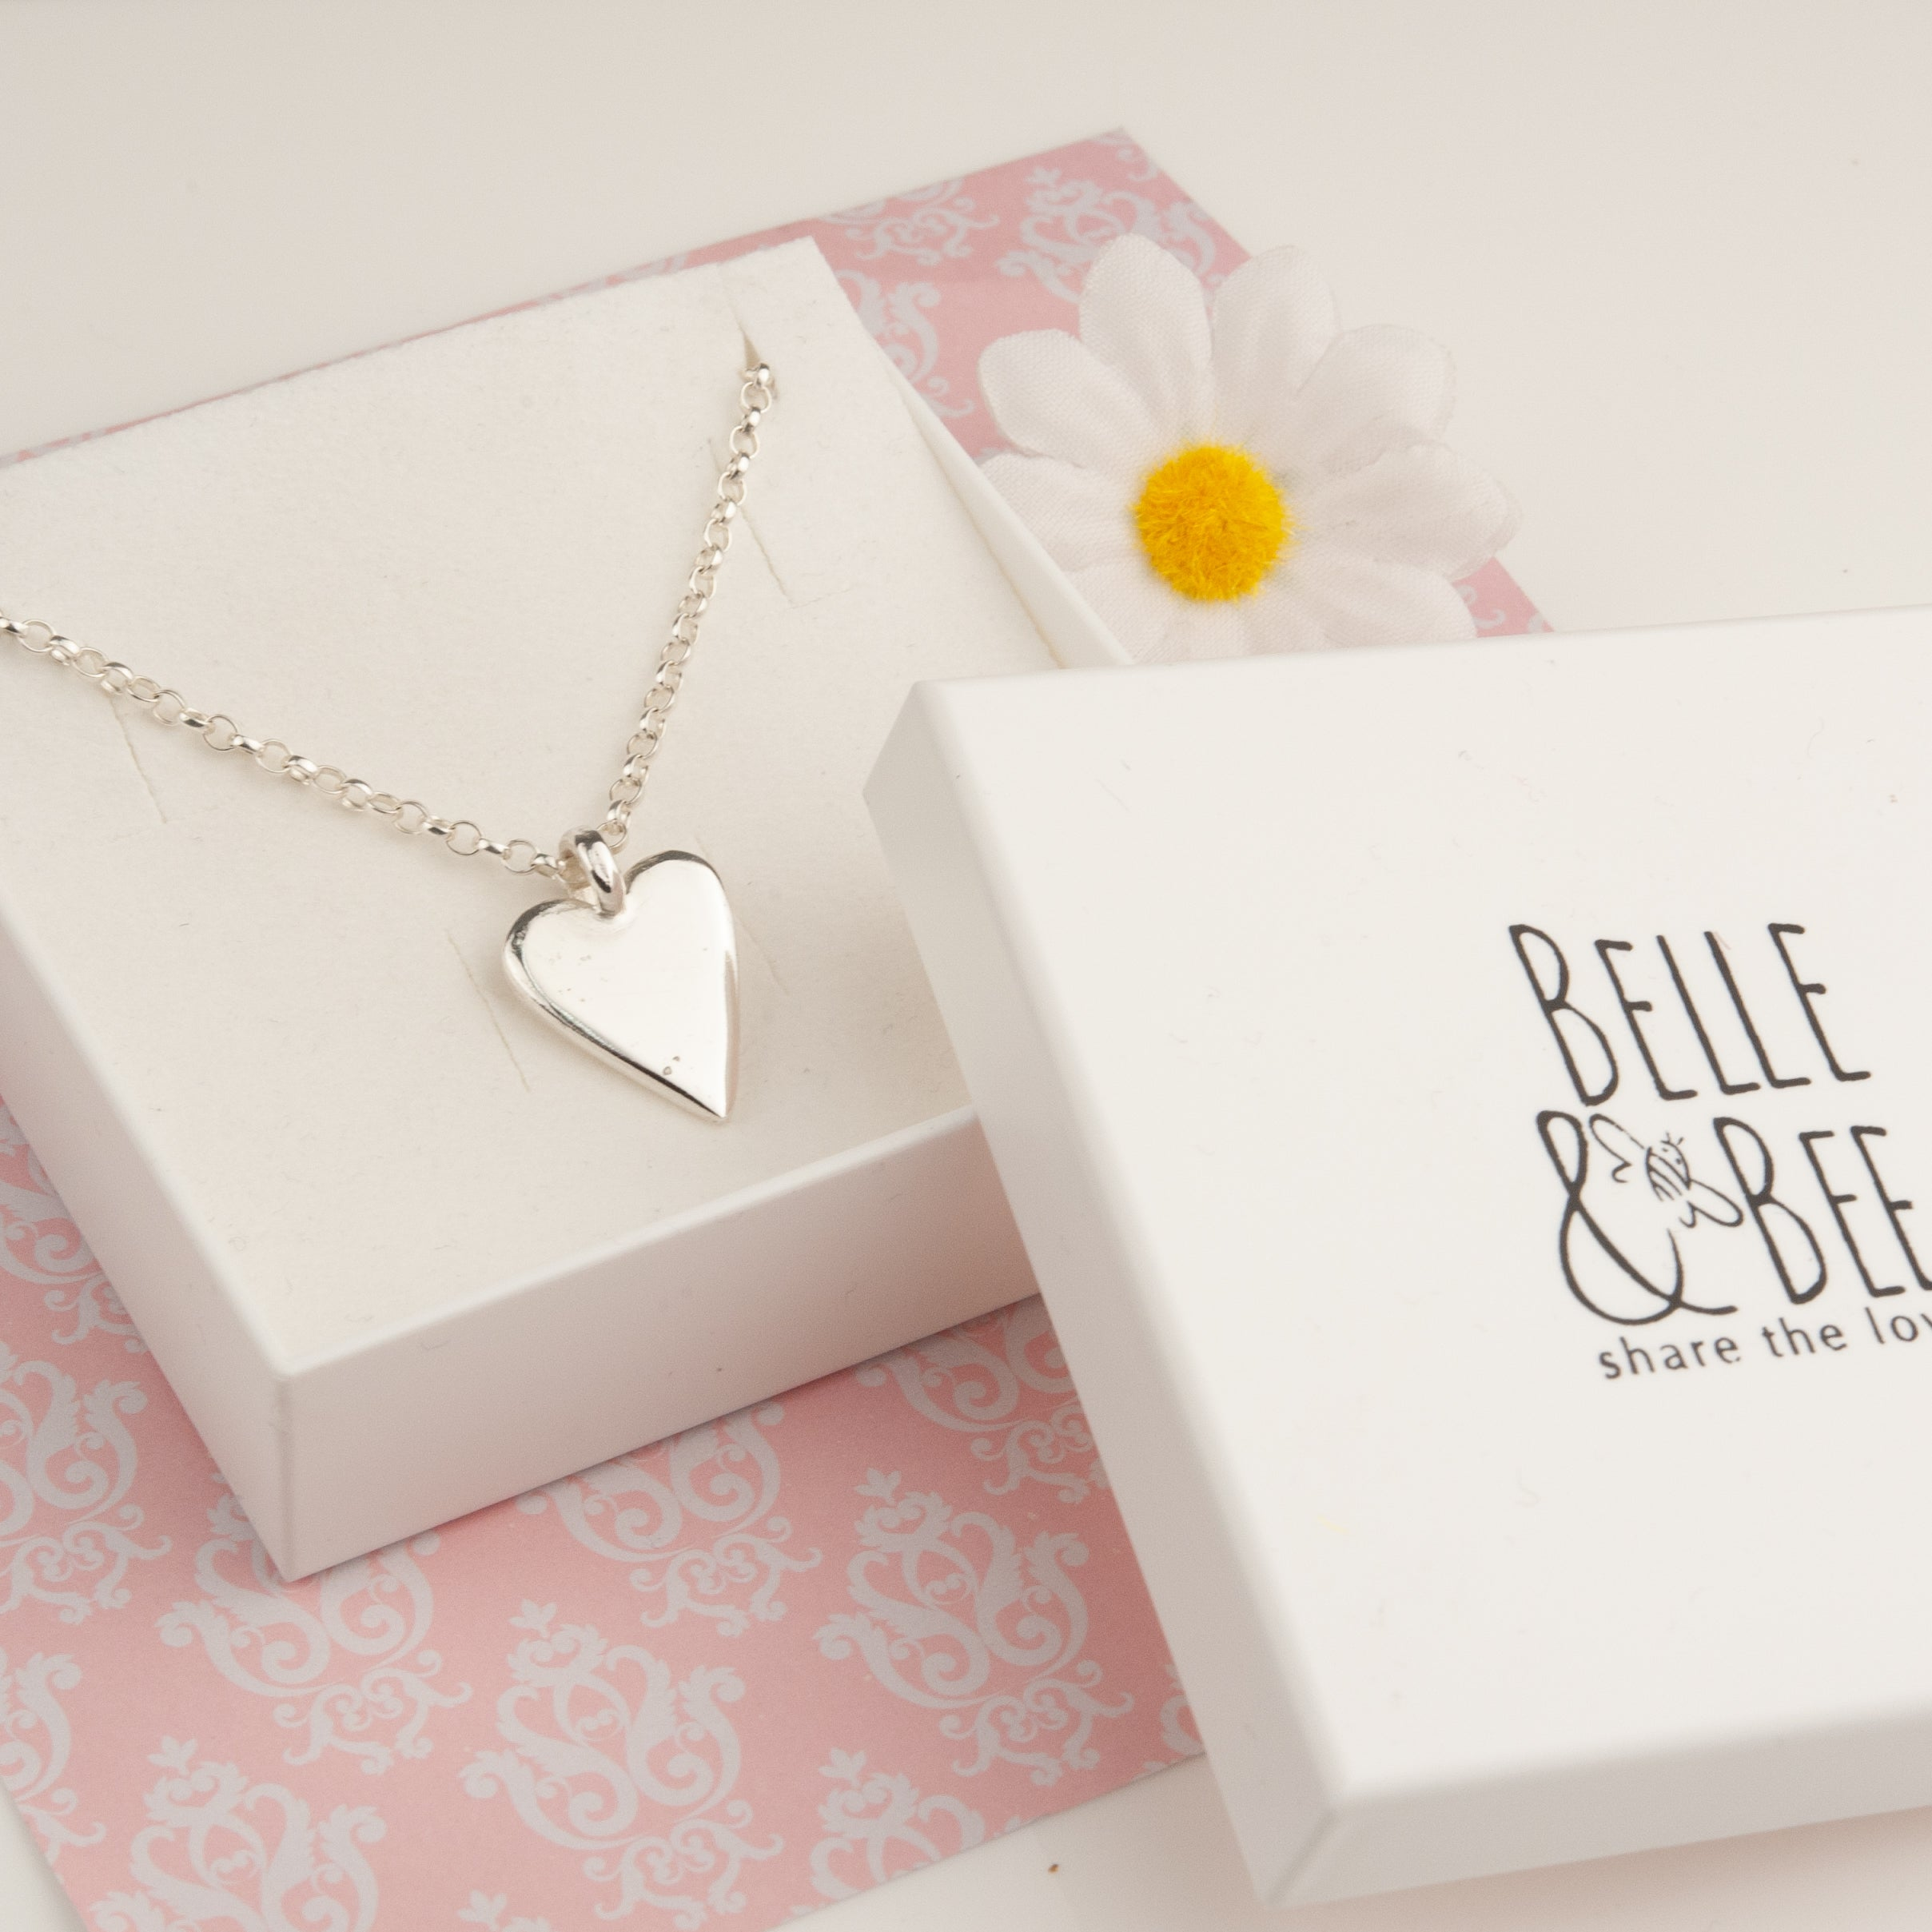 Belle & Bee belcher chain with midi heart charm